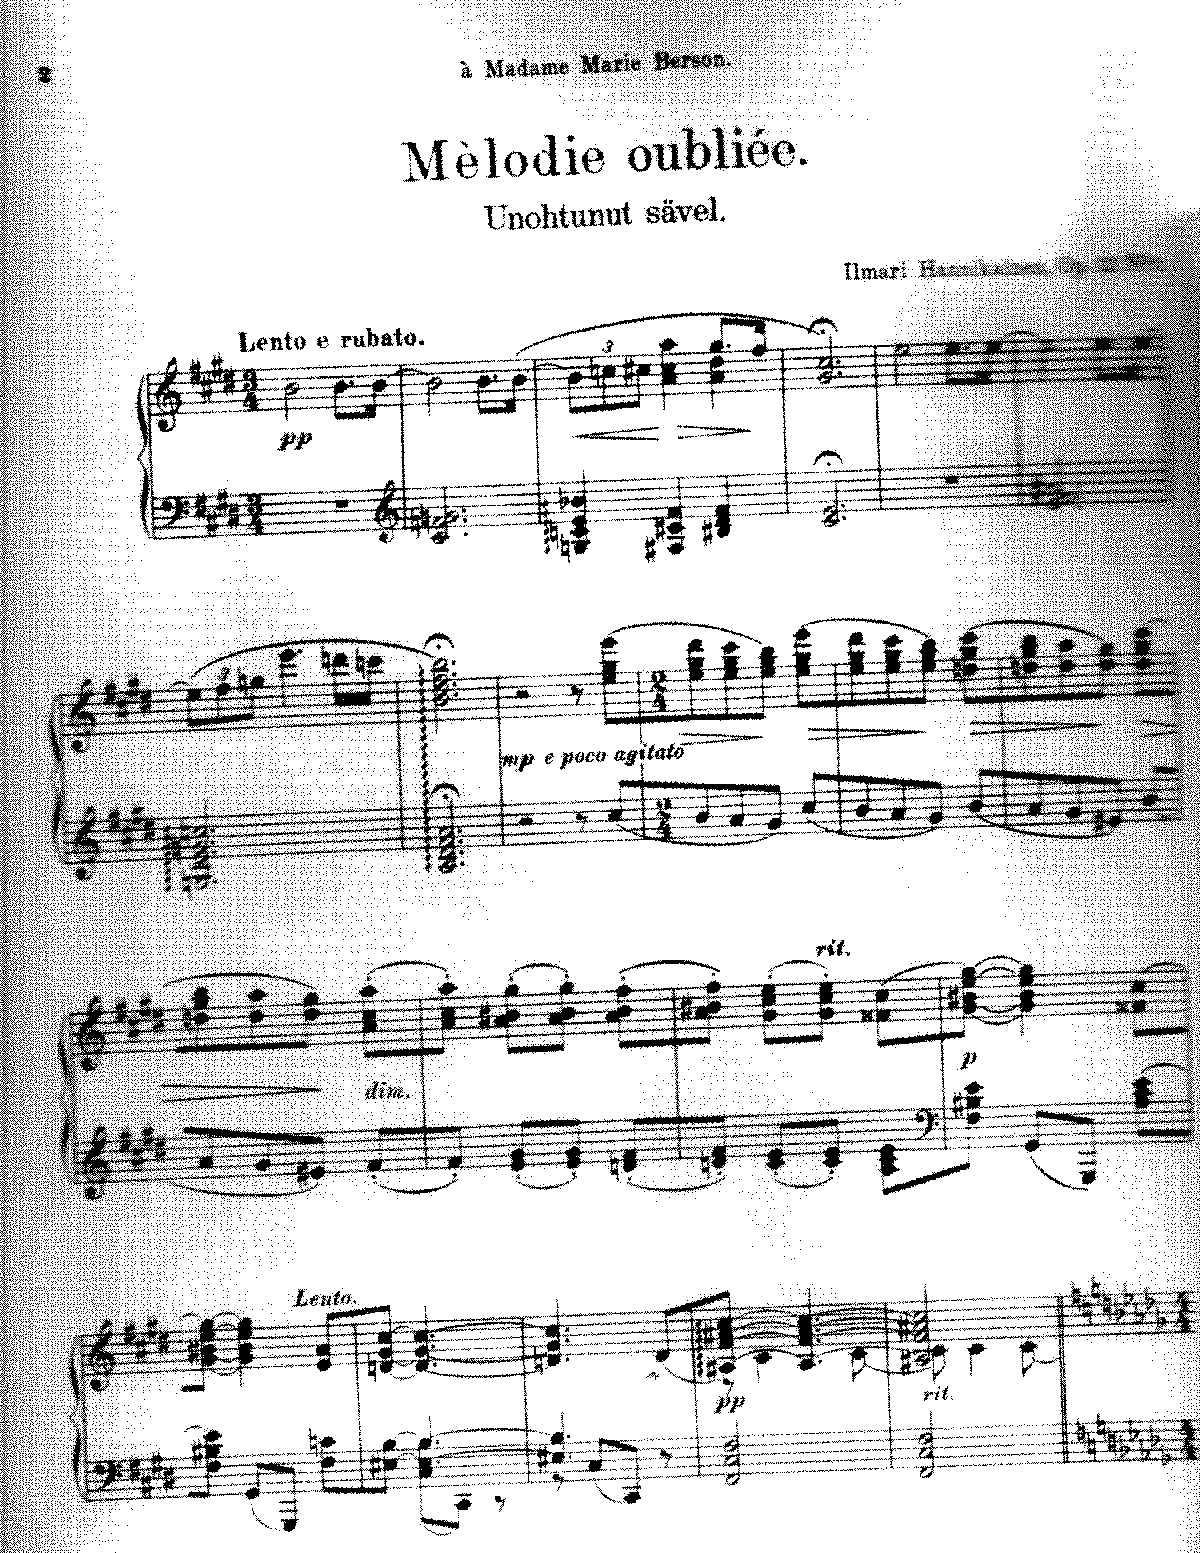 Hannikainen - Melodie oubliee, Op.12 No.1.pdf